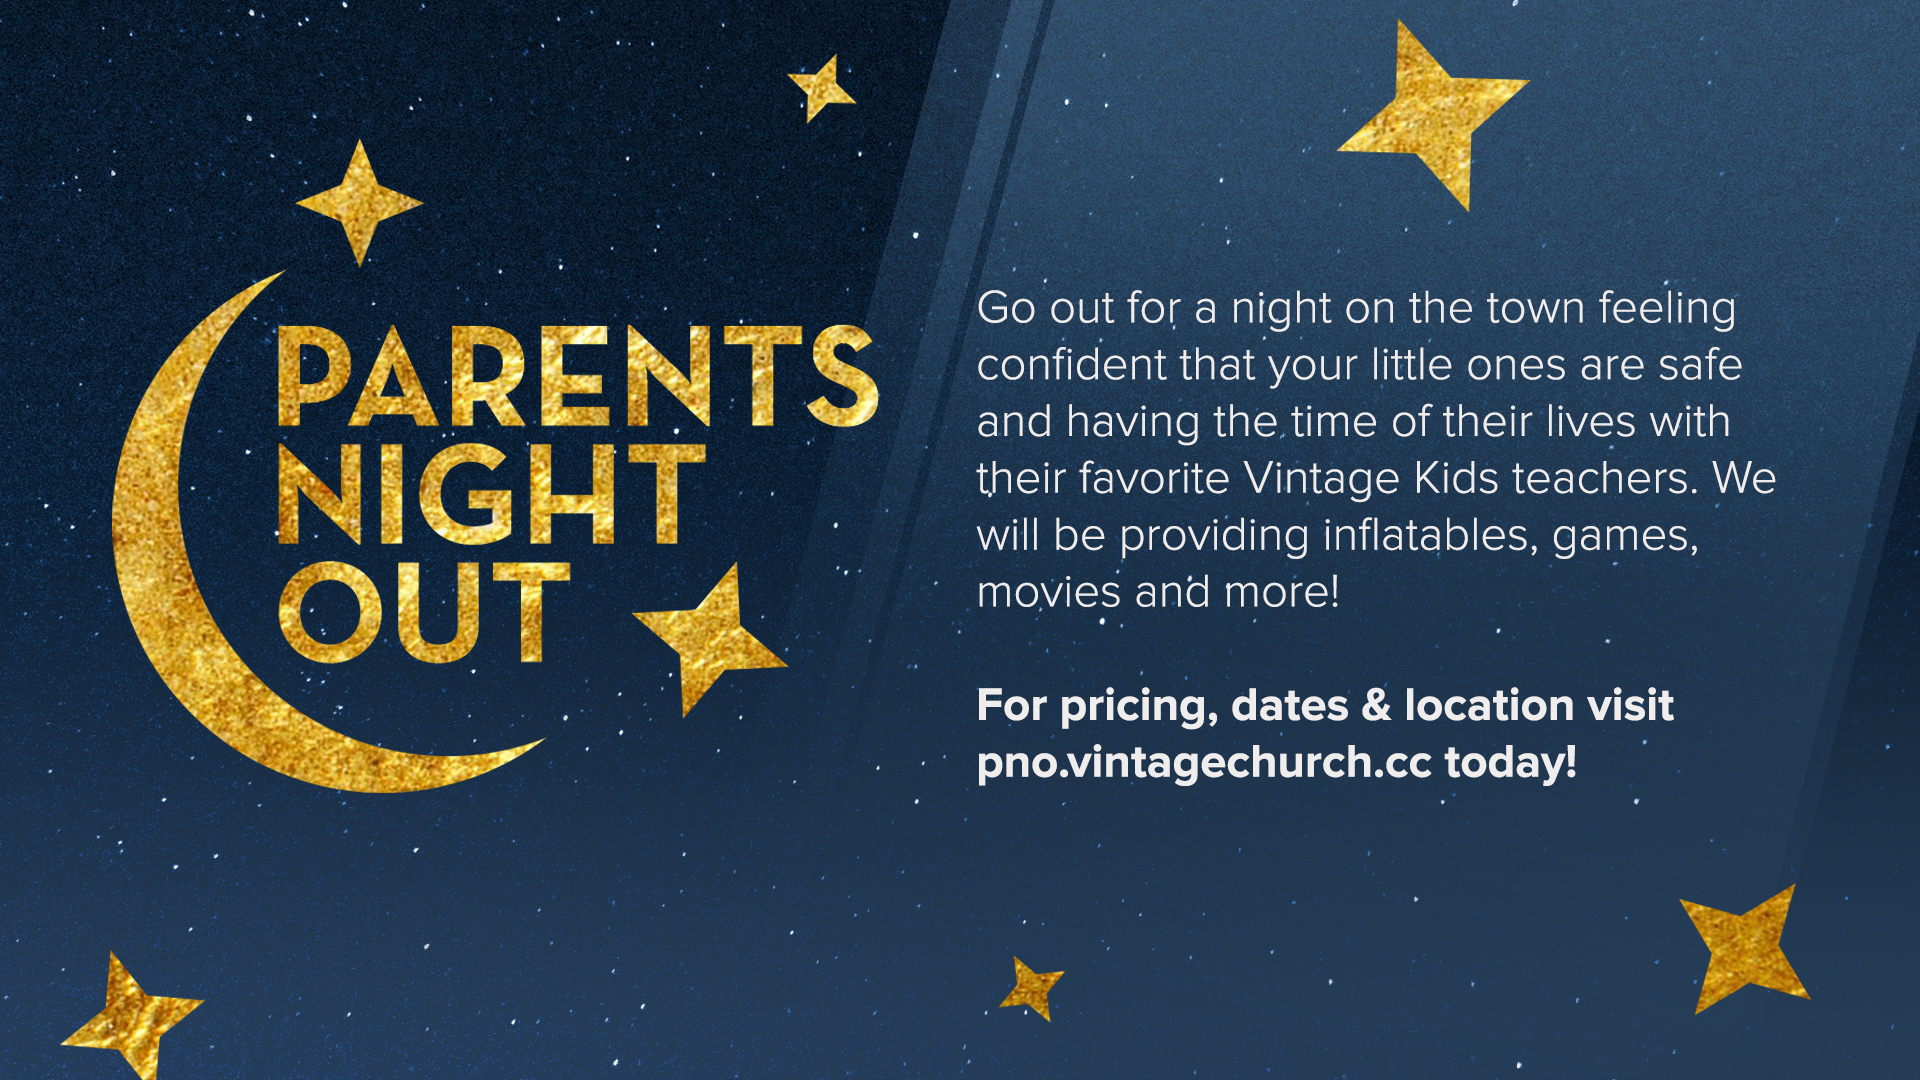 Parents Night Out Slide